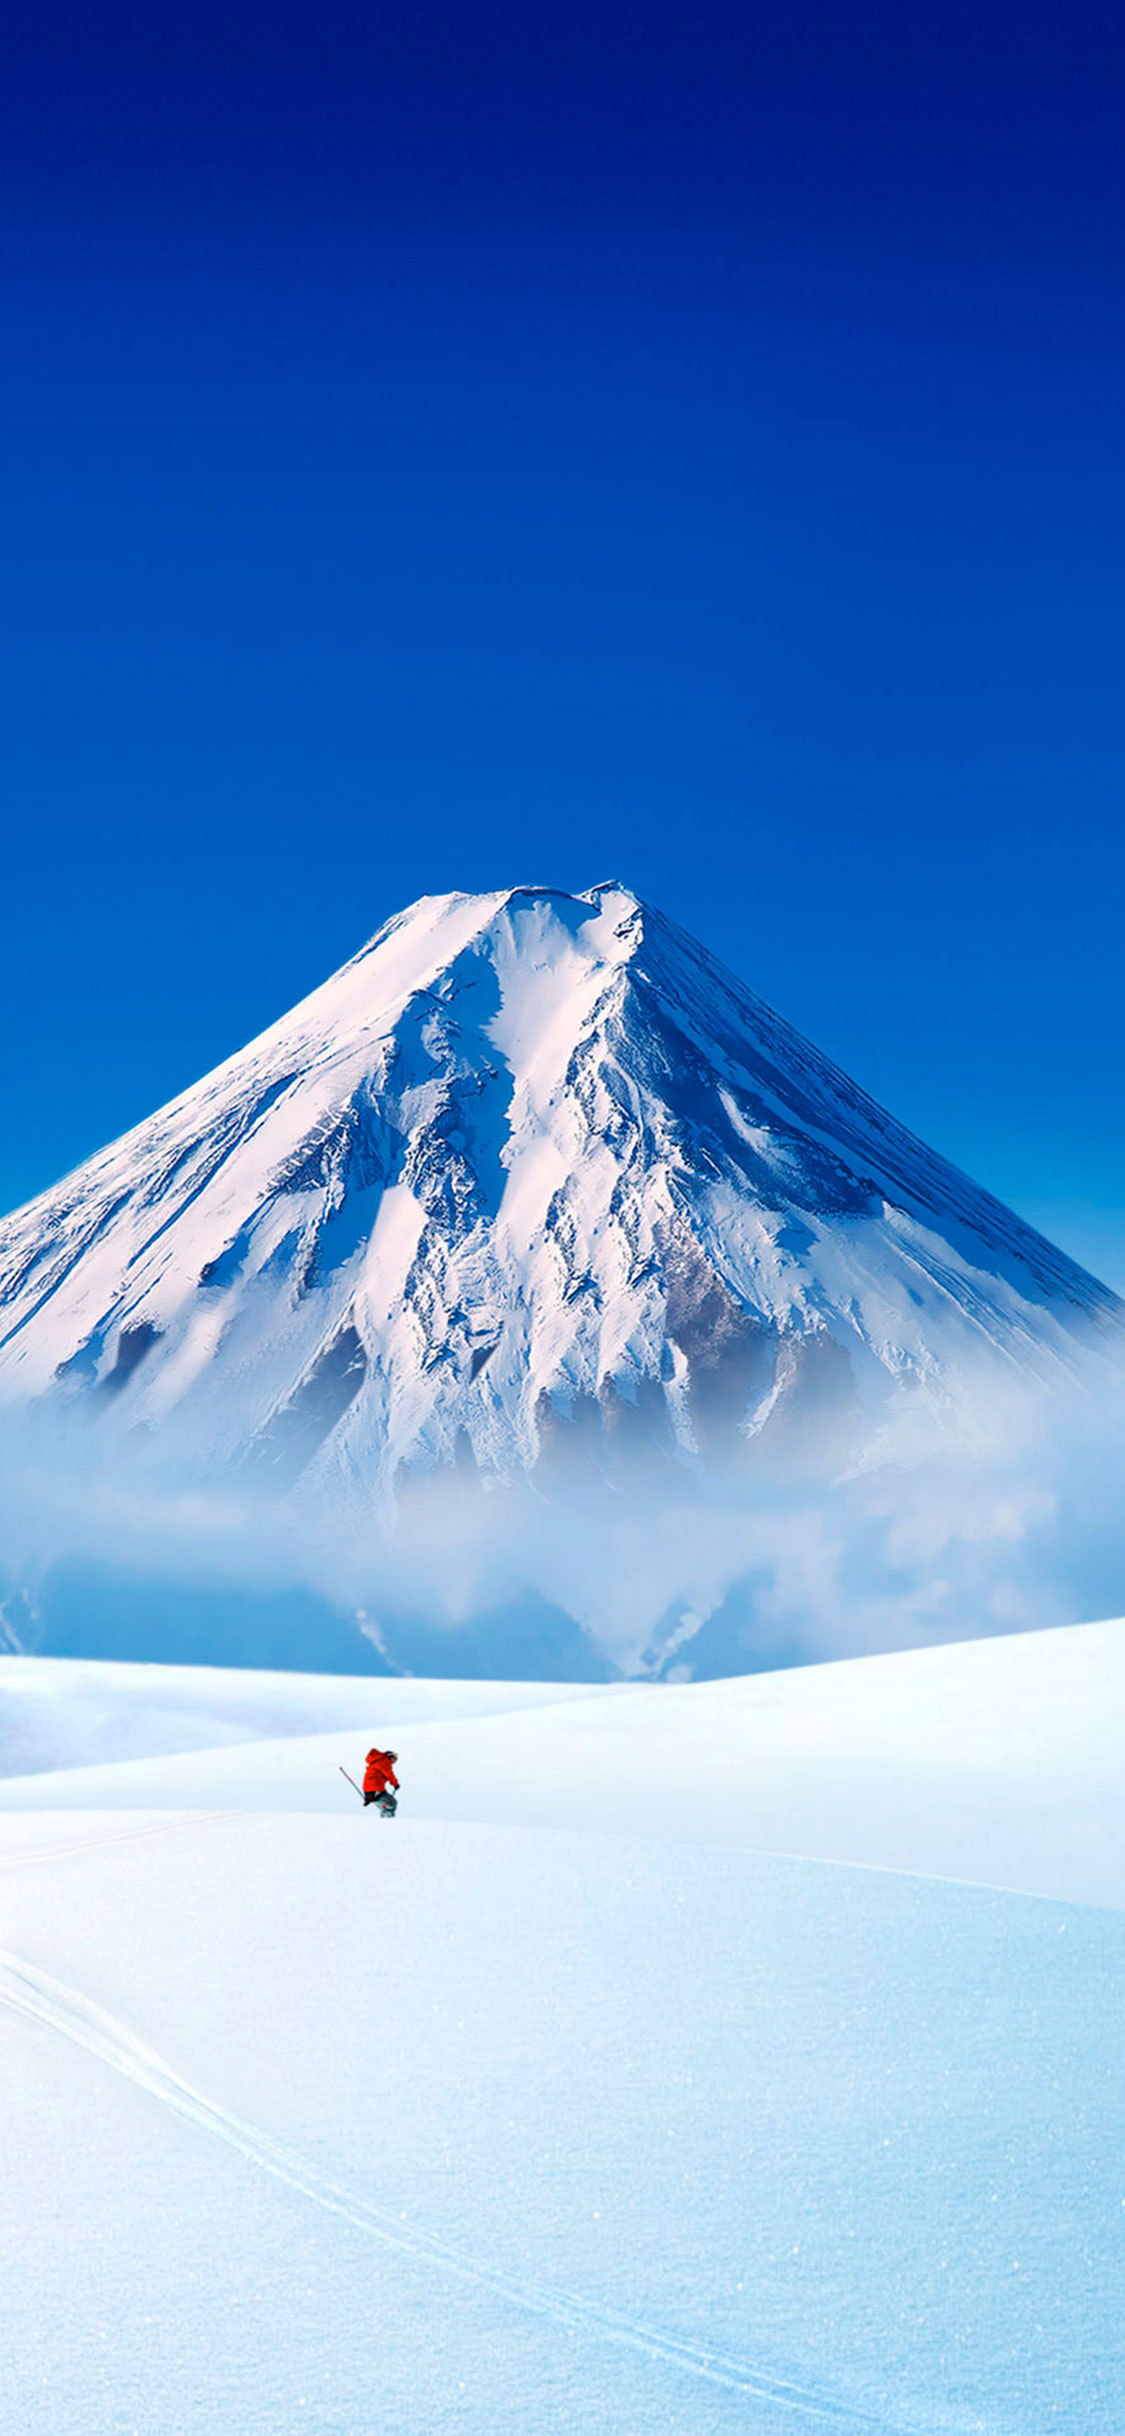 iPhone wallpapers volcano snow Mountains